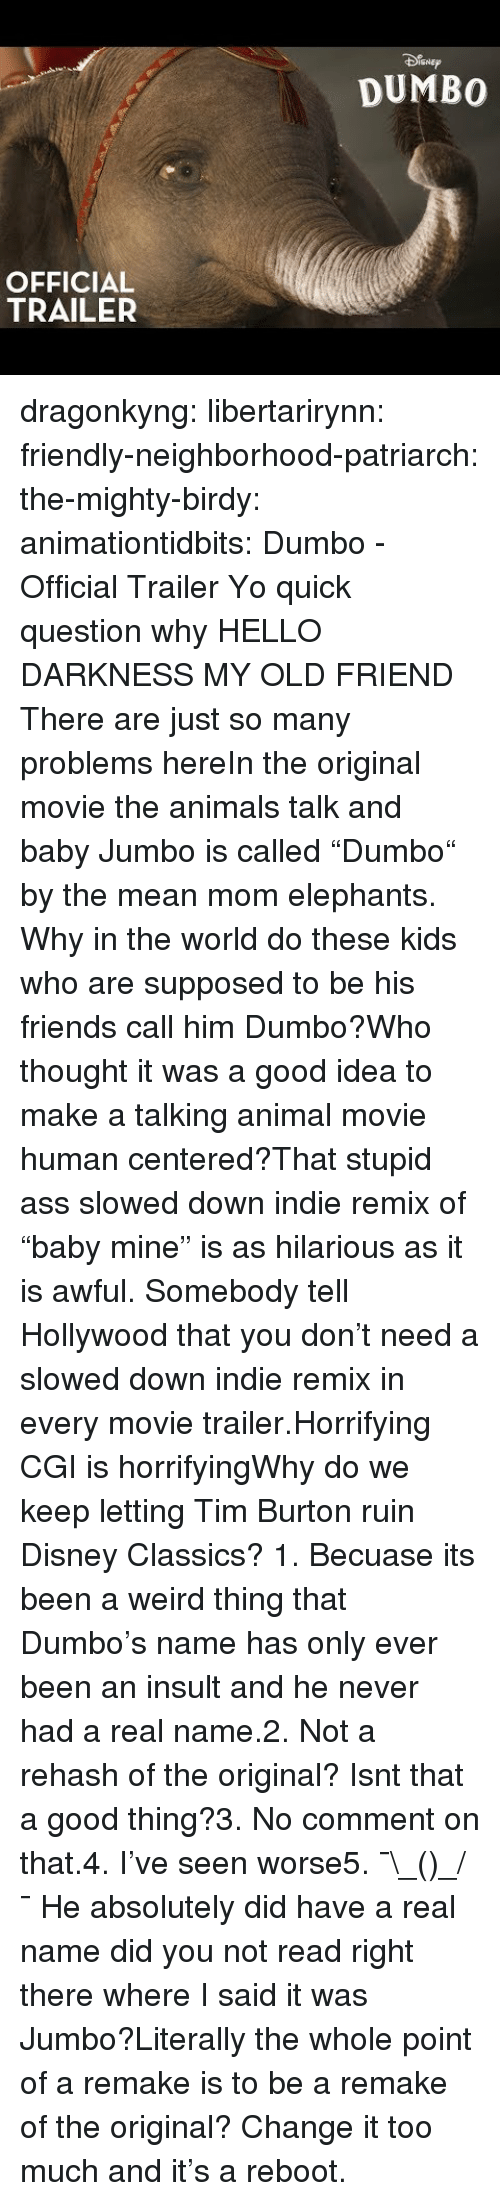 "burton: SNEp  DUMBO  OFFICIAL  TRAILER dragonkyng:  libertarirynn:  friendly-neighborhood-patriarch: the-mighty-birdy:   animationtidbits:  Dumbo - Official Trailer  Yo quick question why   HELLO DARKNESS MY OLD FRIEND  There are just so many problems hereIn the original movie the animals talk and baby Jumbo is called ""Dumbo"" by the mean mom elephants. Why in the world do these kids who are supposed to be his friends call him Dumbo?Who thought it was a good idea to make a talking animal movie human centered?That stupid ass slowed down indie remix of ""baby mine"" is as hilarious as it is awful. Somebody tell Hollywood that you don't need a slowed down indie remix in every movie trailer.Horrifying CGI is horrifyingWhy do we keep letting Tim Burton ruin Disney Classics?  1. Becuase its been a weird thing that Dumbo's name has only ever been an insult and he never had a real name.2. Not a rehash of the original? Isnt that a good thing?3. No comment on that.4. I've seen worse5. ¯\_(ツ)_/¯  He absolutely did have a real name did you not read right there where I said it was Jumbo?Literally the whole point of a remake is to be a remake of the original? Change it too much and it's a reboot."